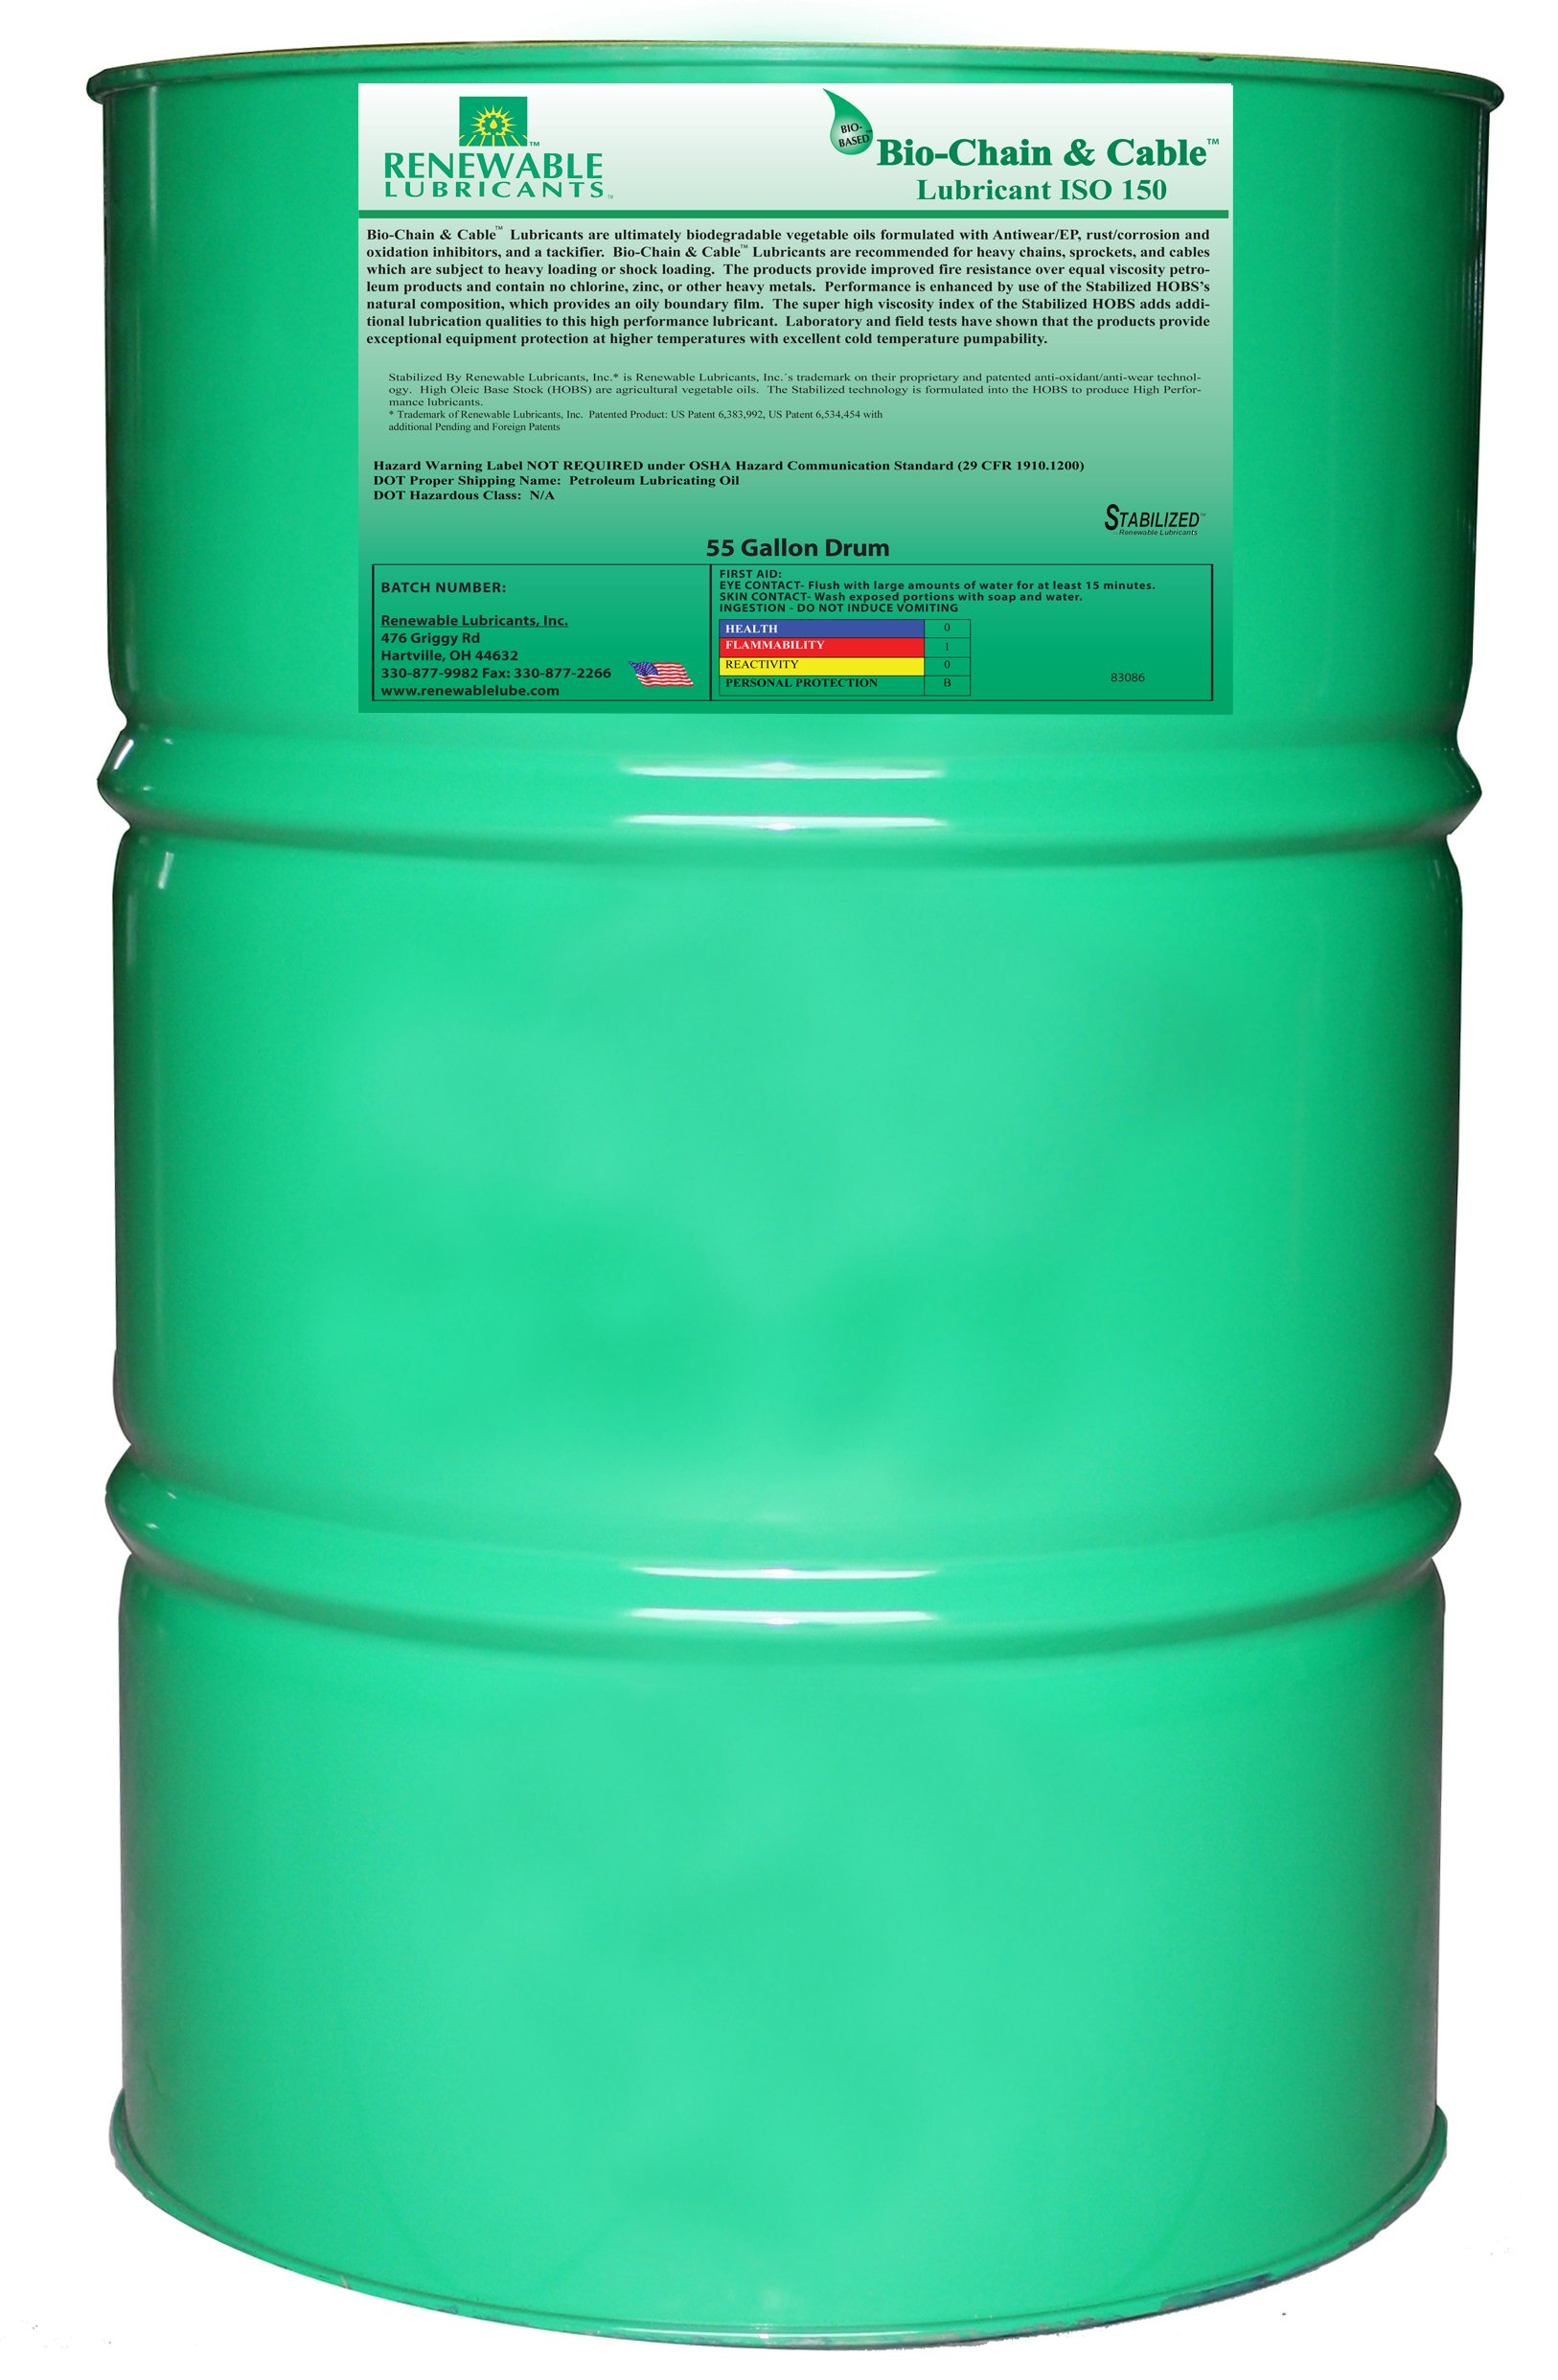 Renewable Lubricants Bio-Chain and Cable ISO 150 Lubricant Oil, 55 Gallon Drum by Renewable Lubricants